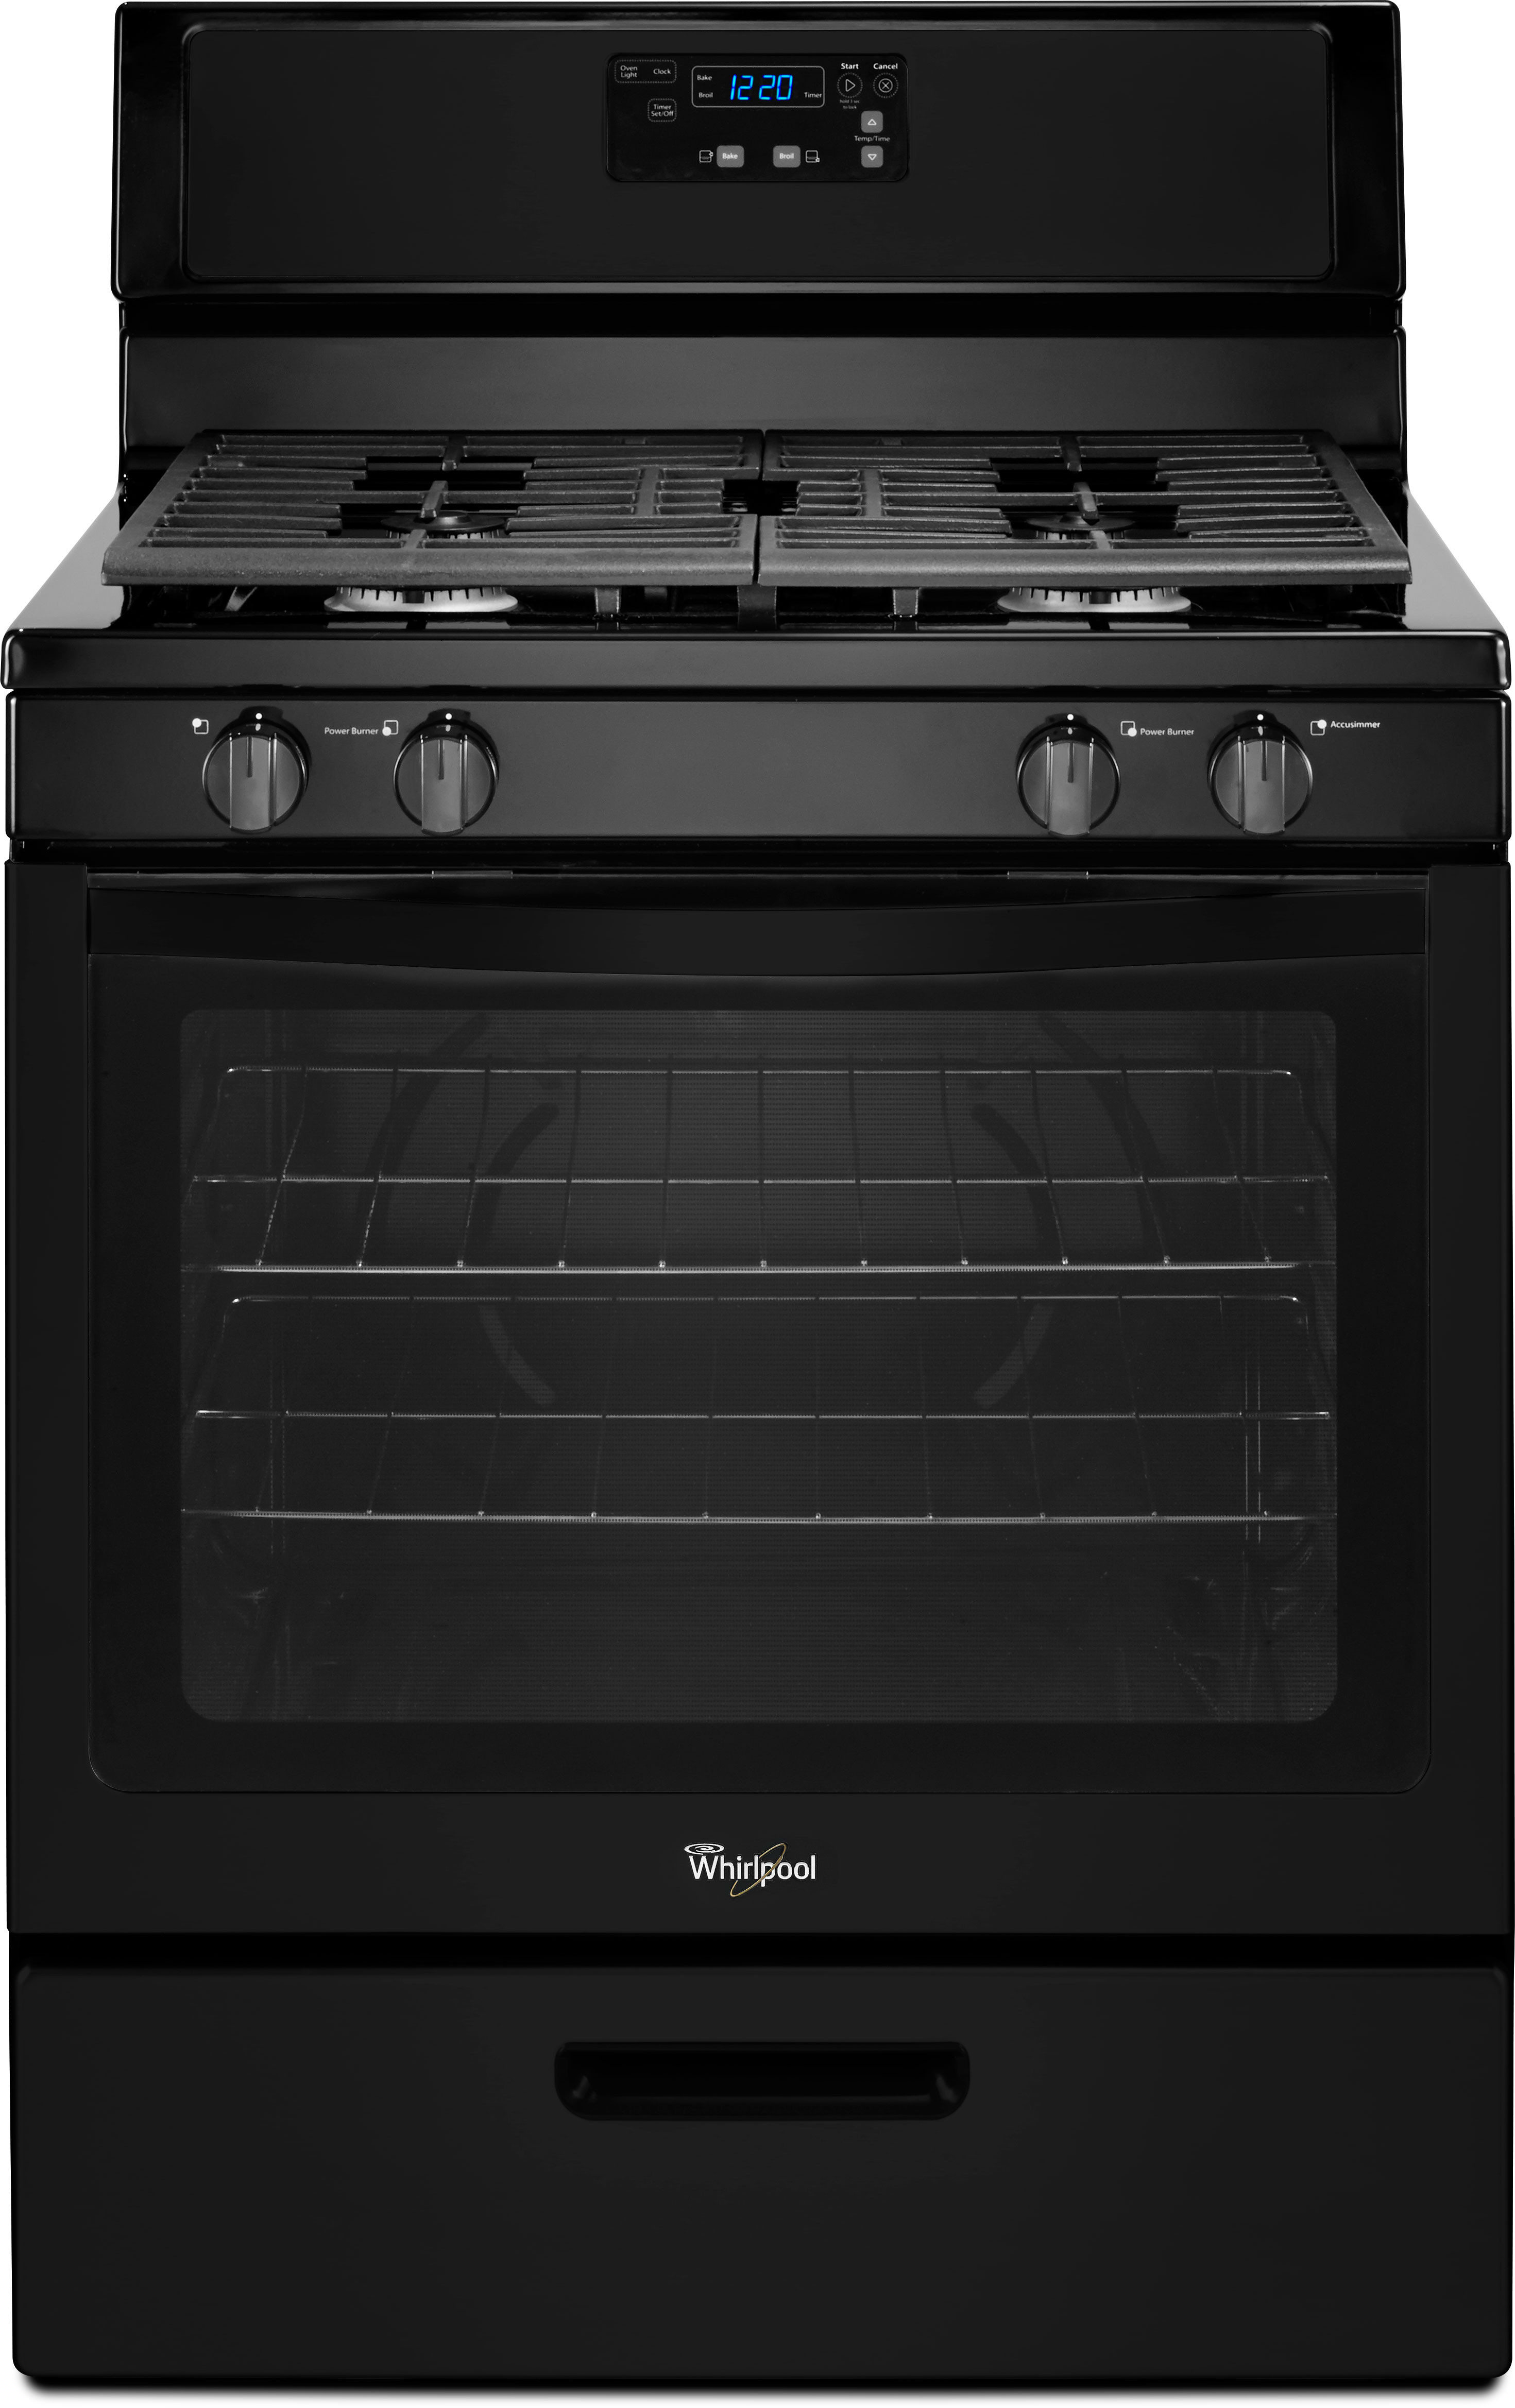 Whirlpool Wfg320m0bb 30 Inch Freestanding Gas Range With 5